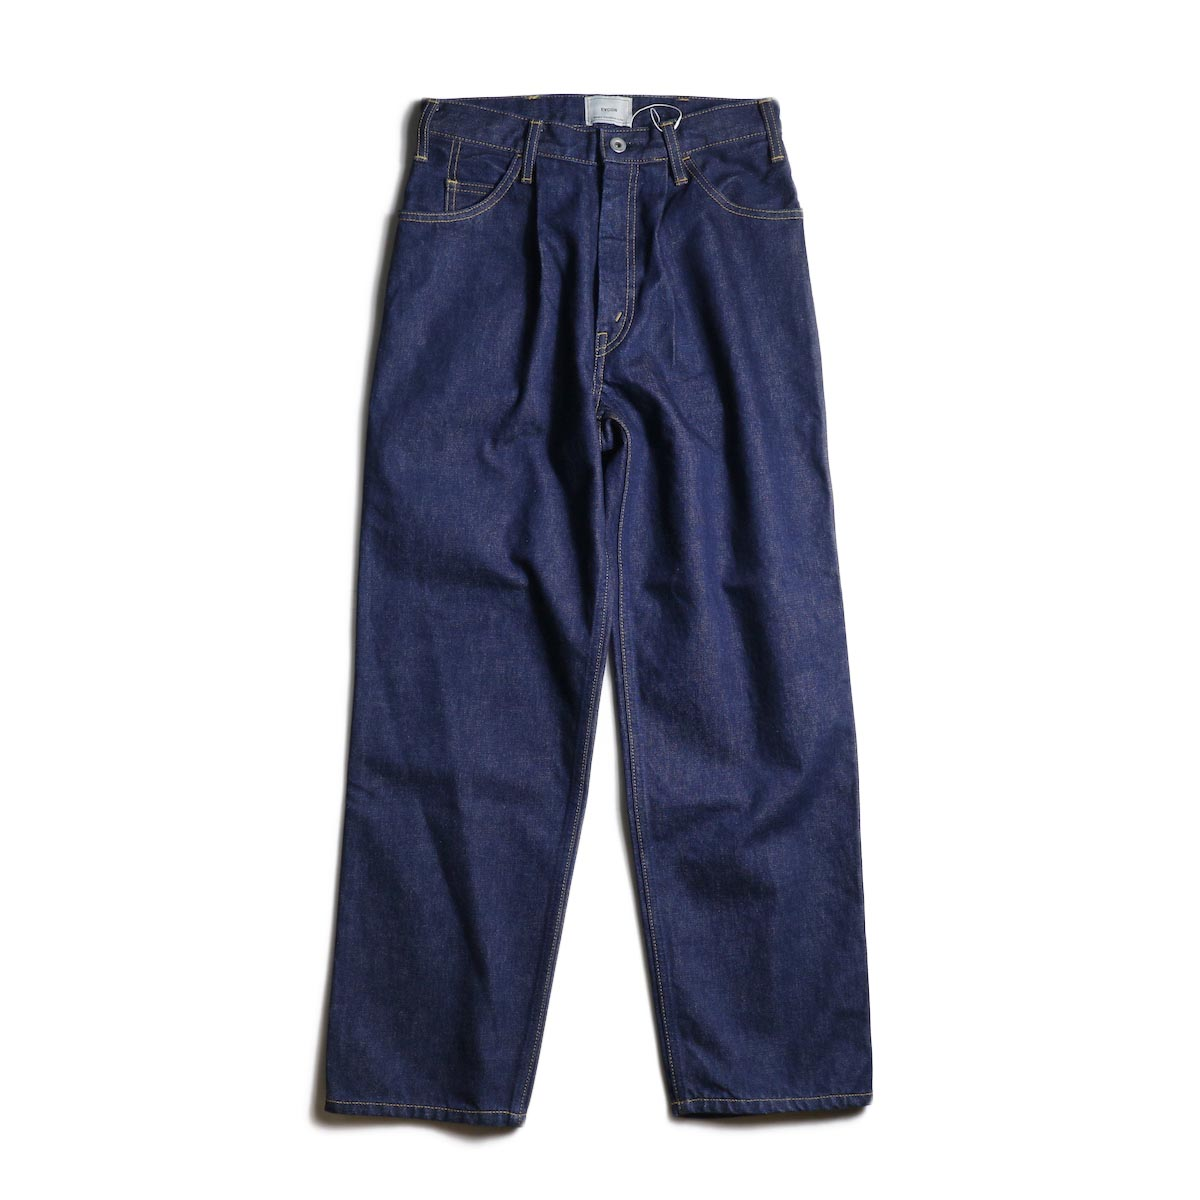 EVCON / 5POCKET TUCK WIDE DENIM PANTS (Indigo)